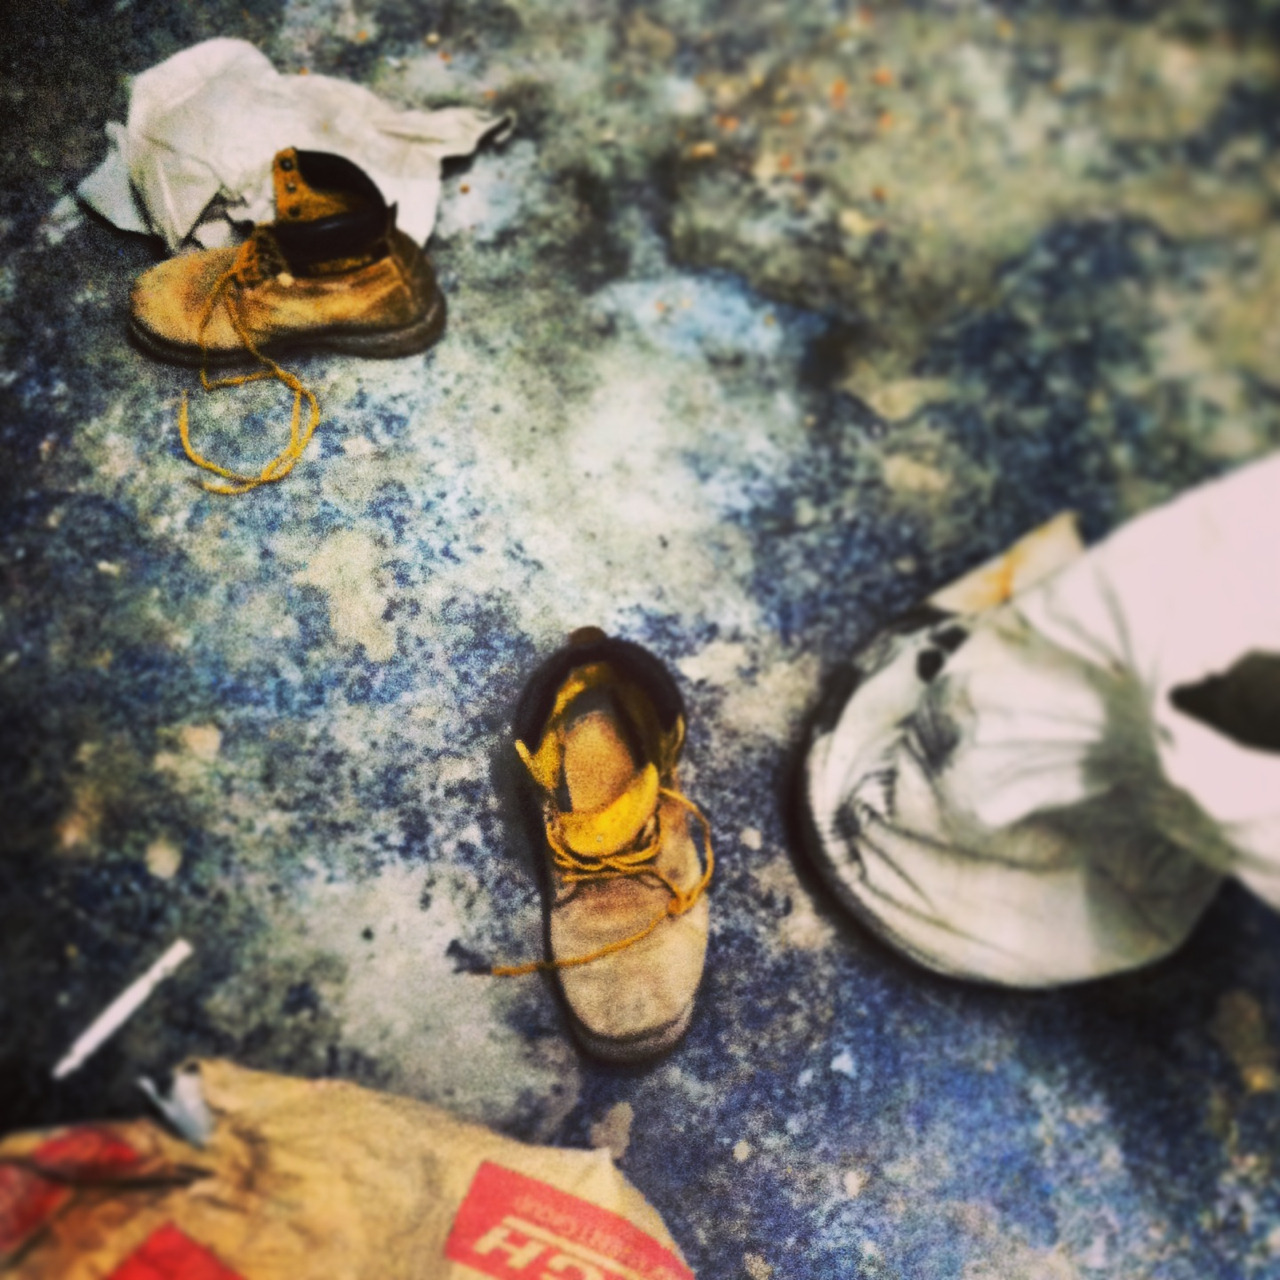 Location: Long Island City, New York Abandoned shoes at construction site